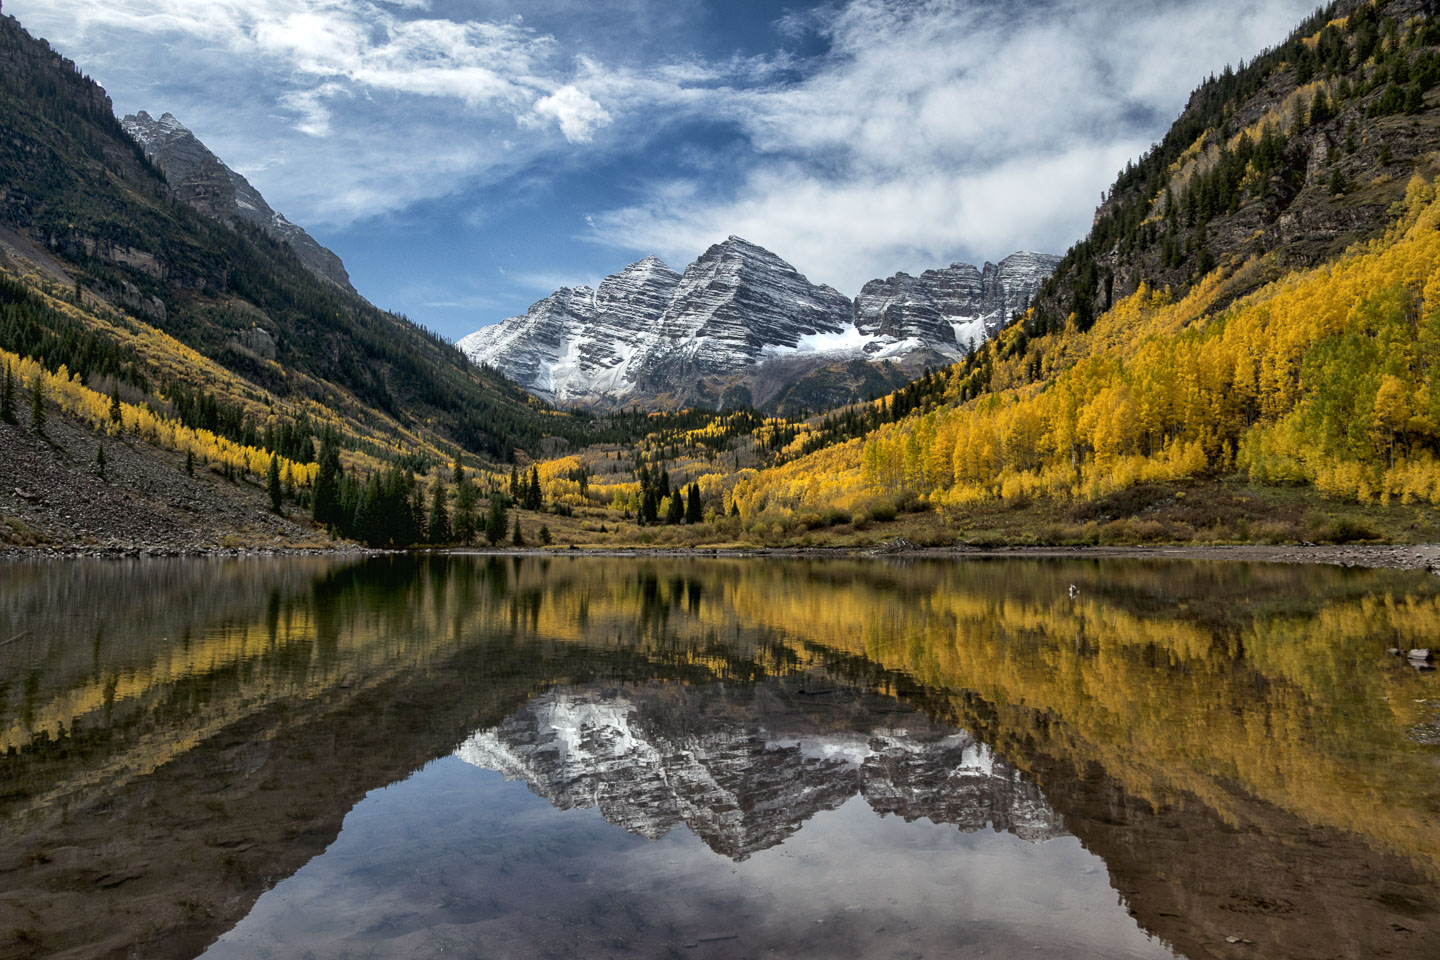 deadly-maroon-bells.jpg